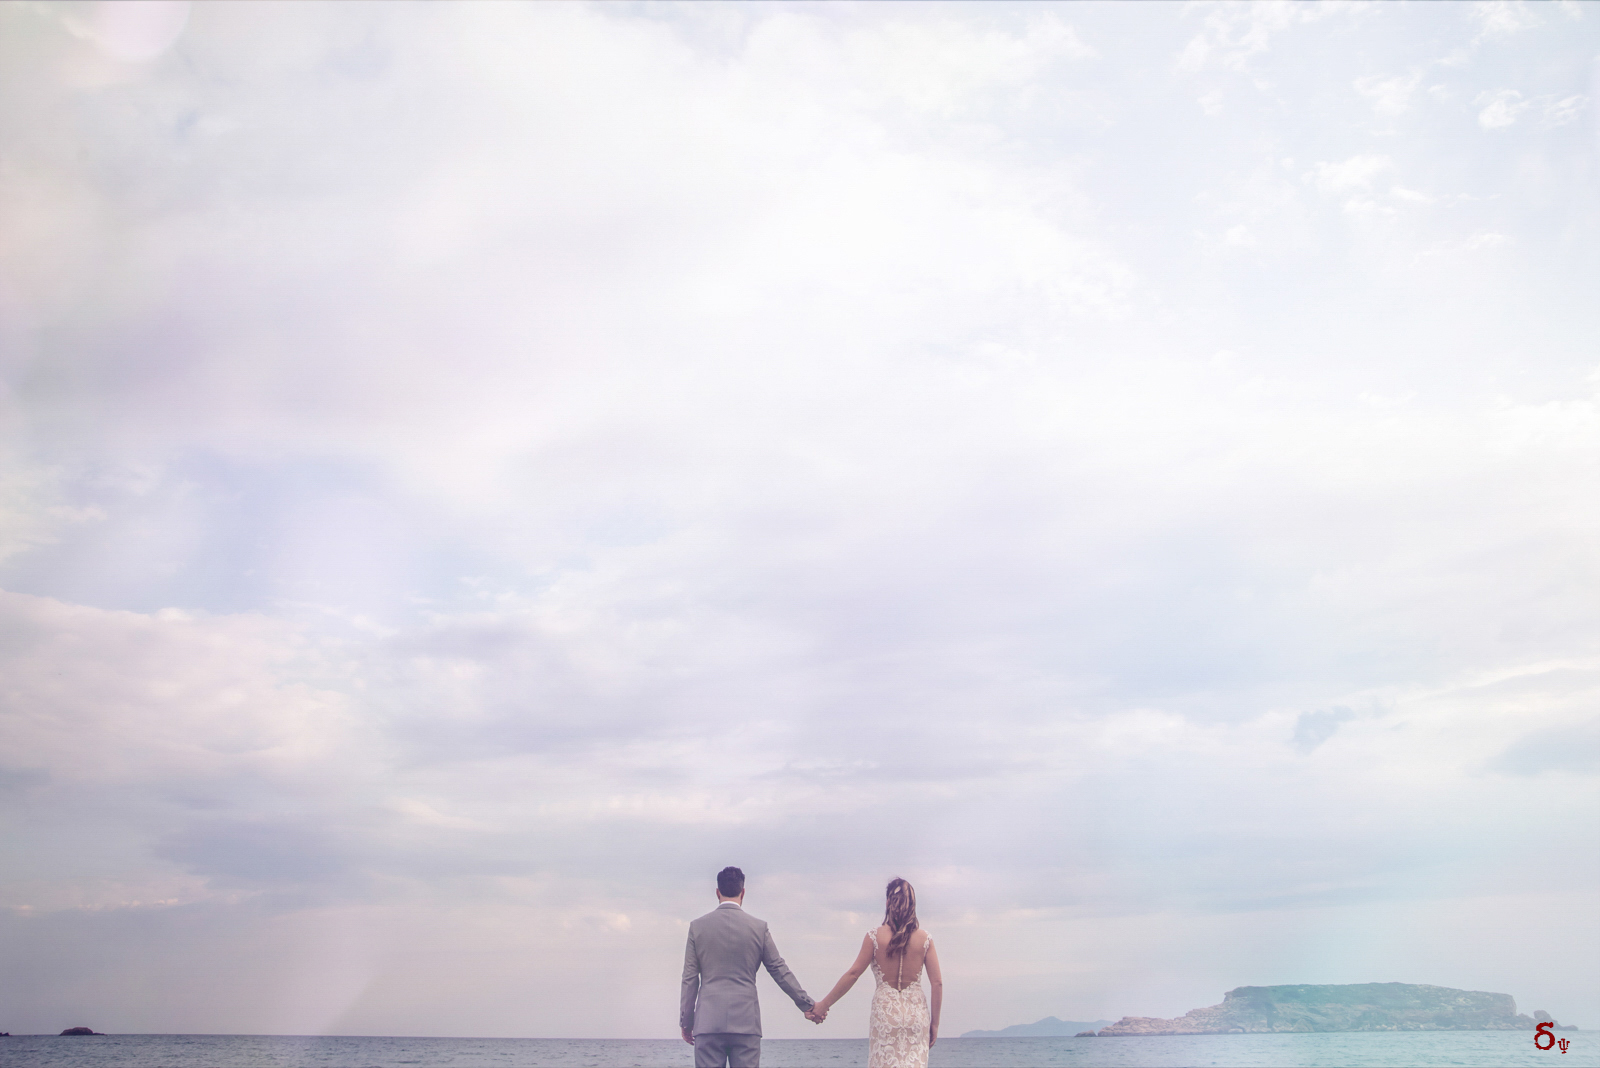 next day photoshooting wedding vows wedding by the sea after photography in love wedding photography